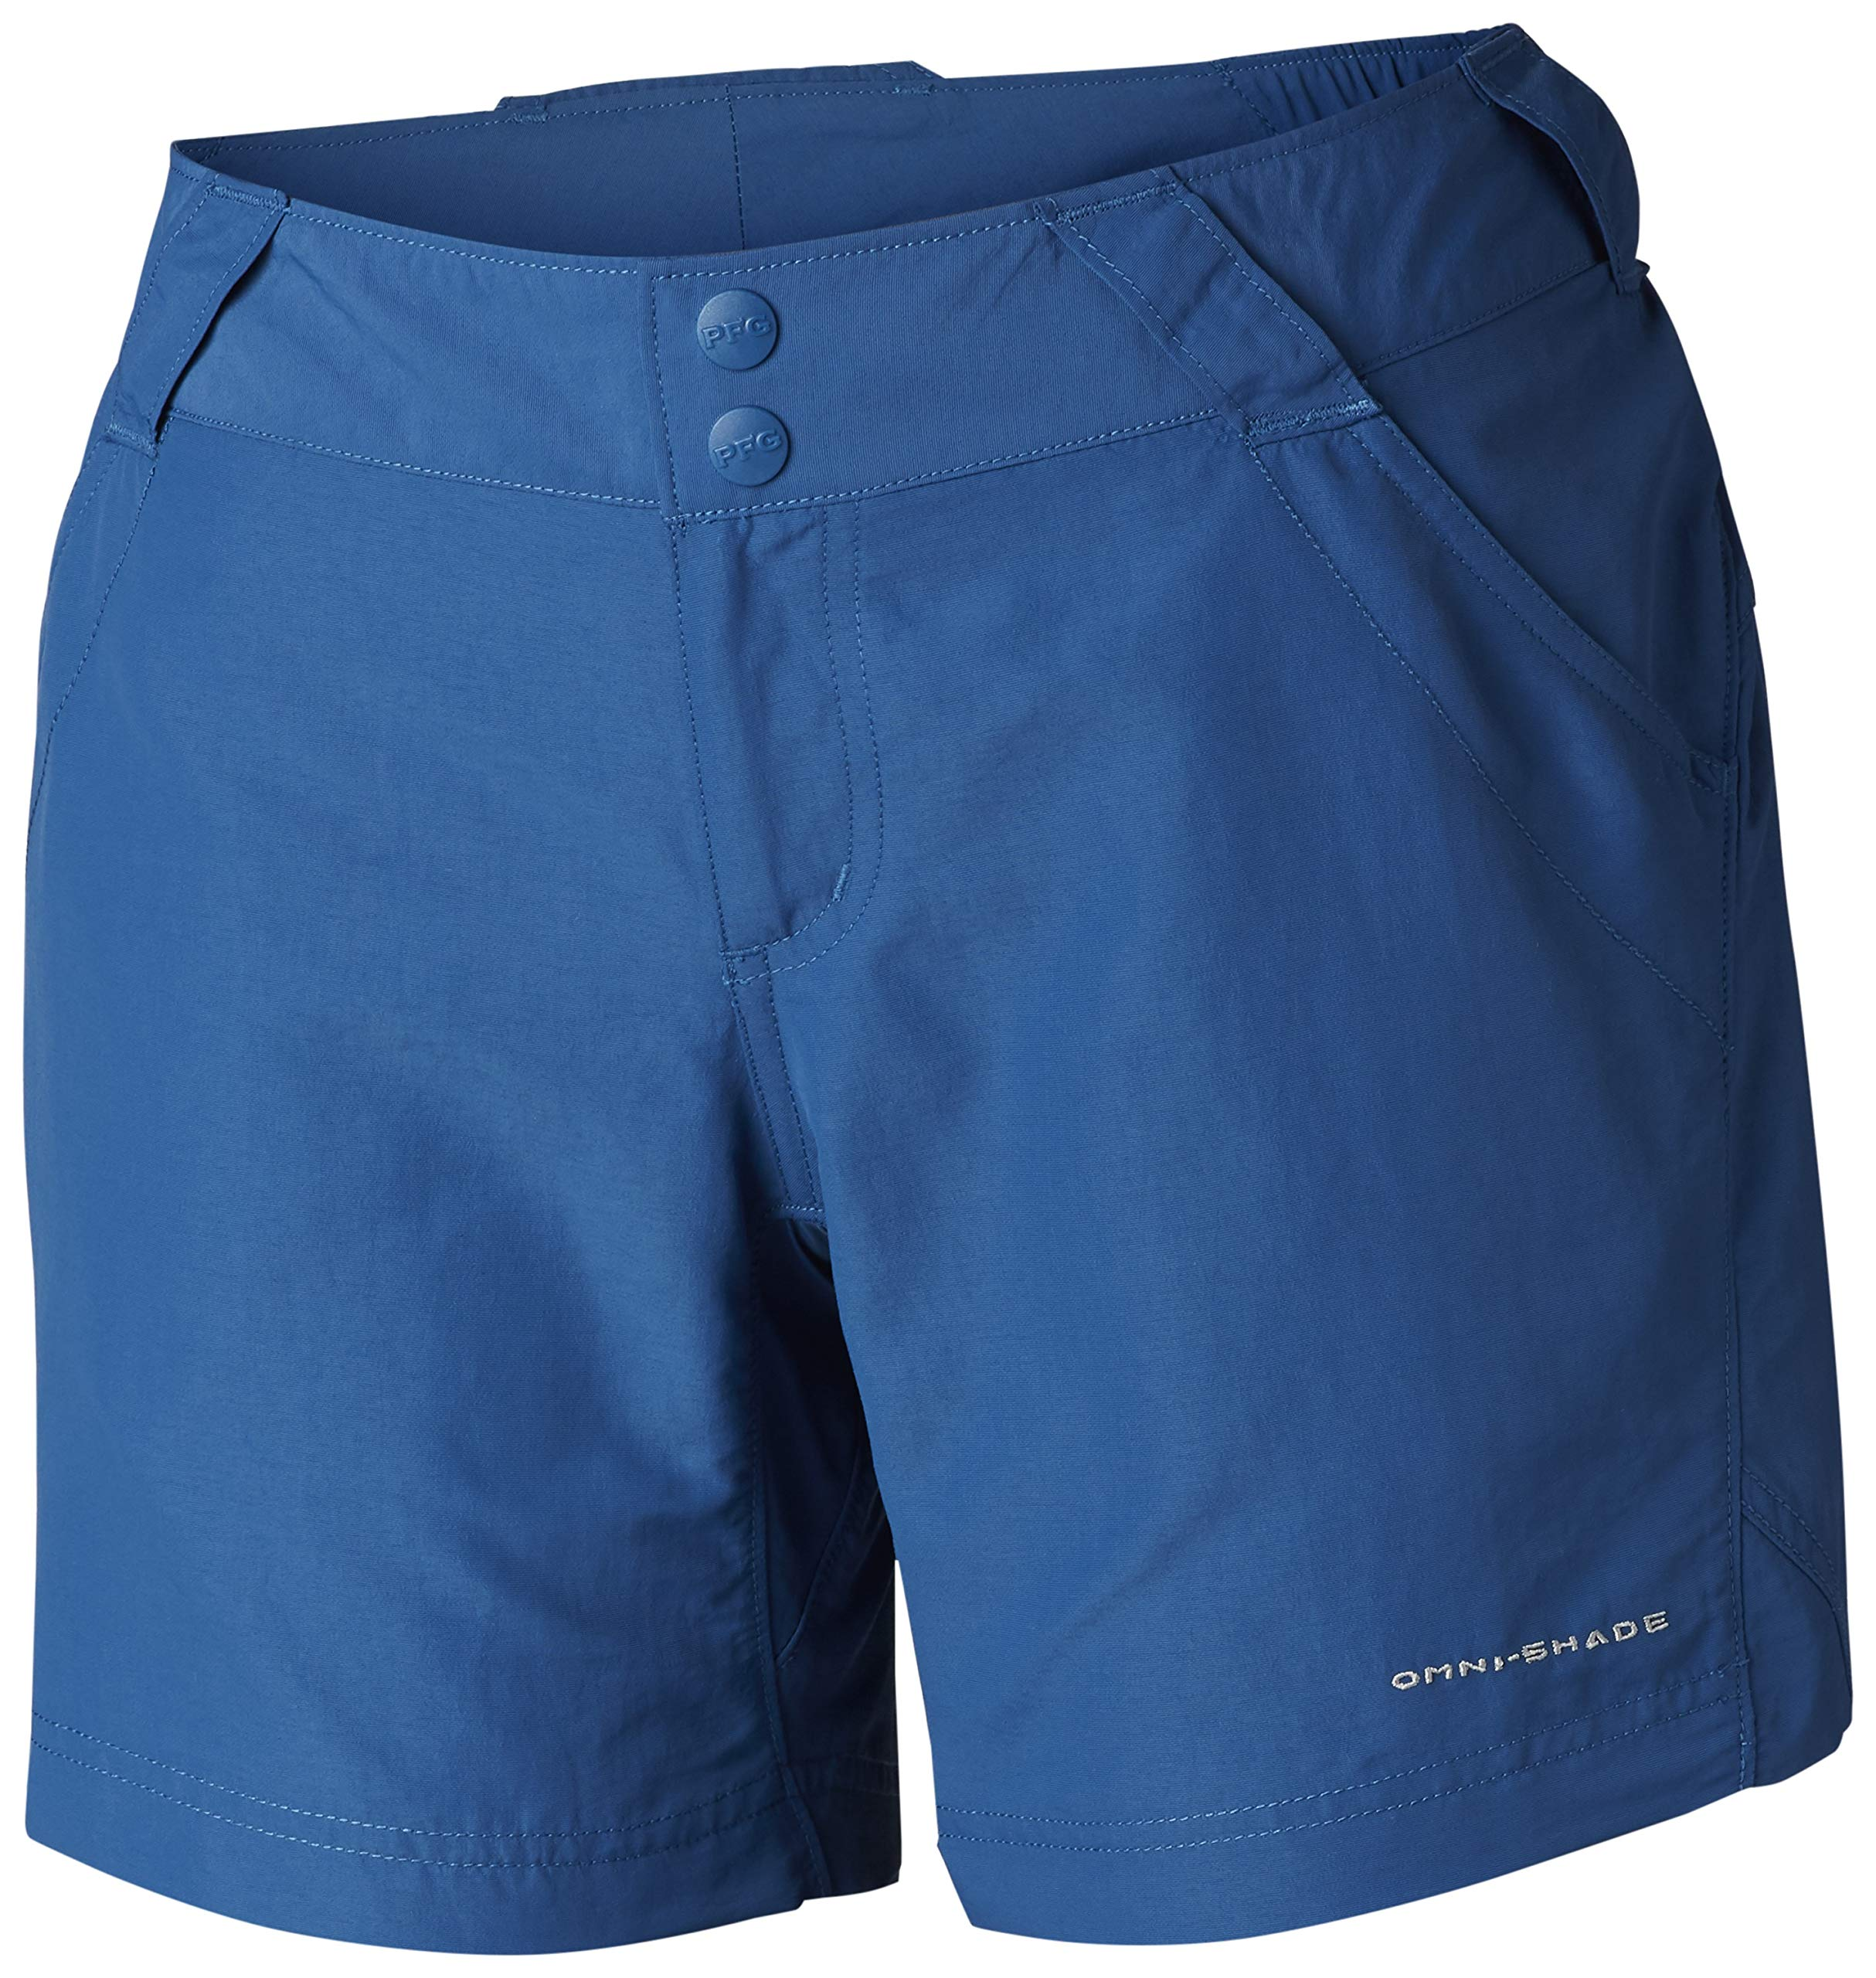 Columbia Women's Coral Point II Short, UV Sun Protection, Moisture Wicking Fabric , Impulse Blue , X-Large x 6'' Inseam by Columbia